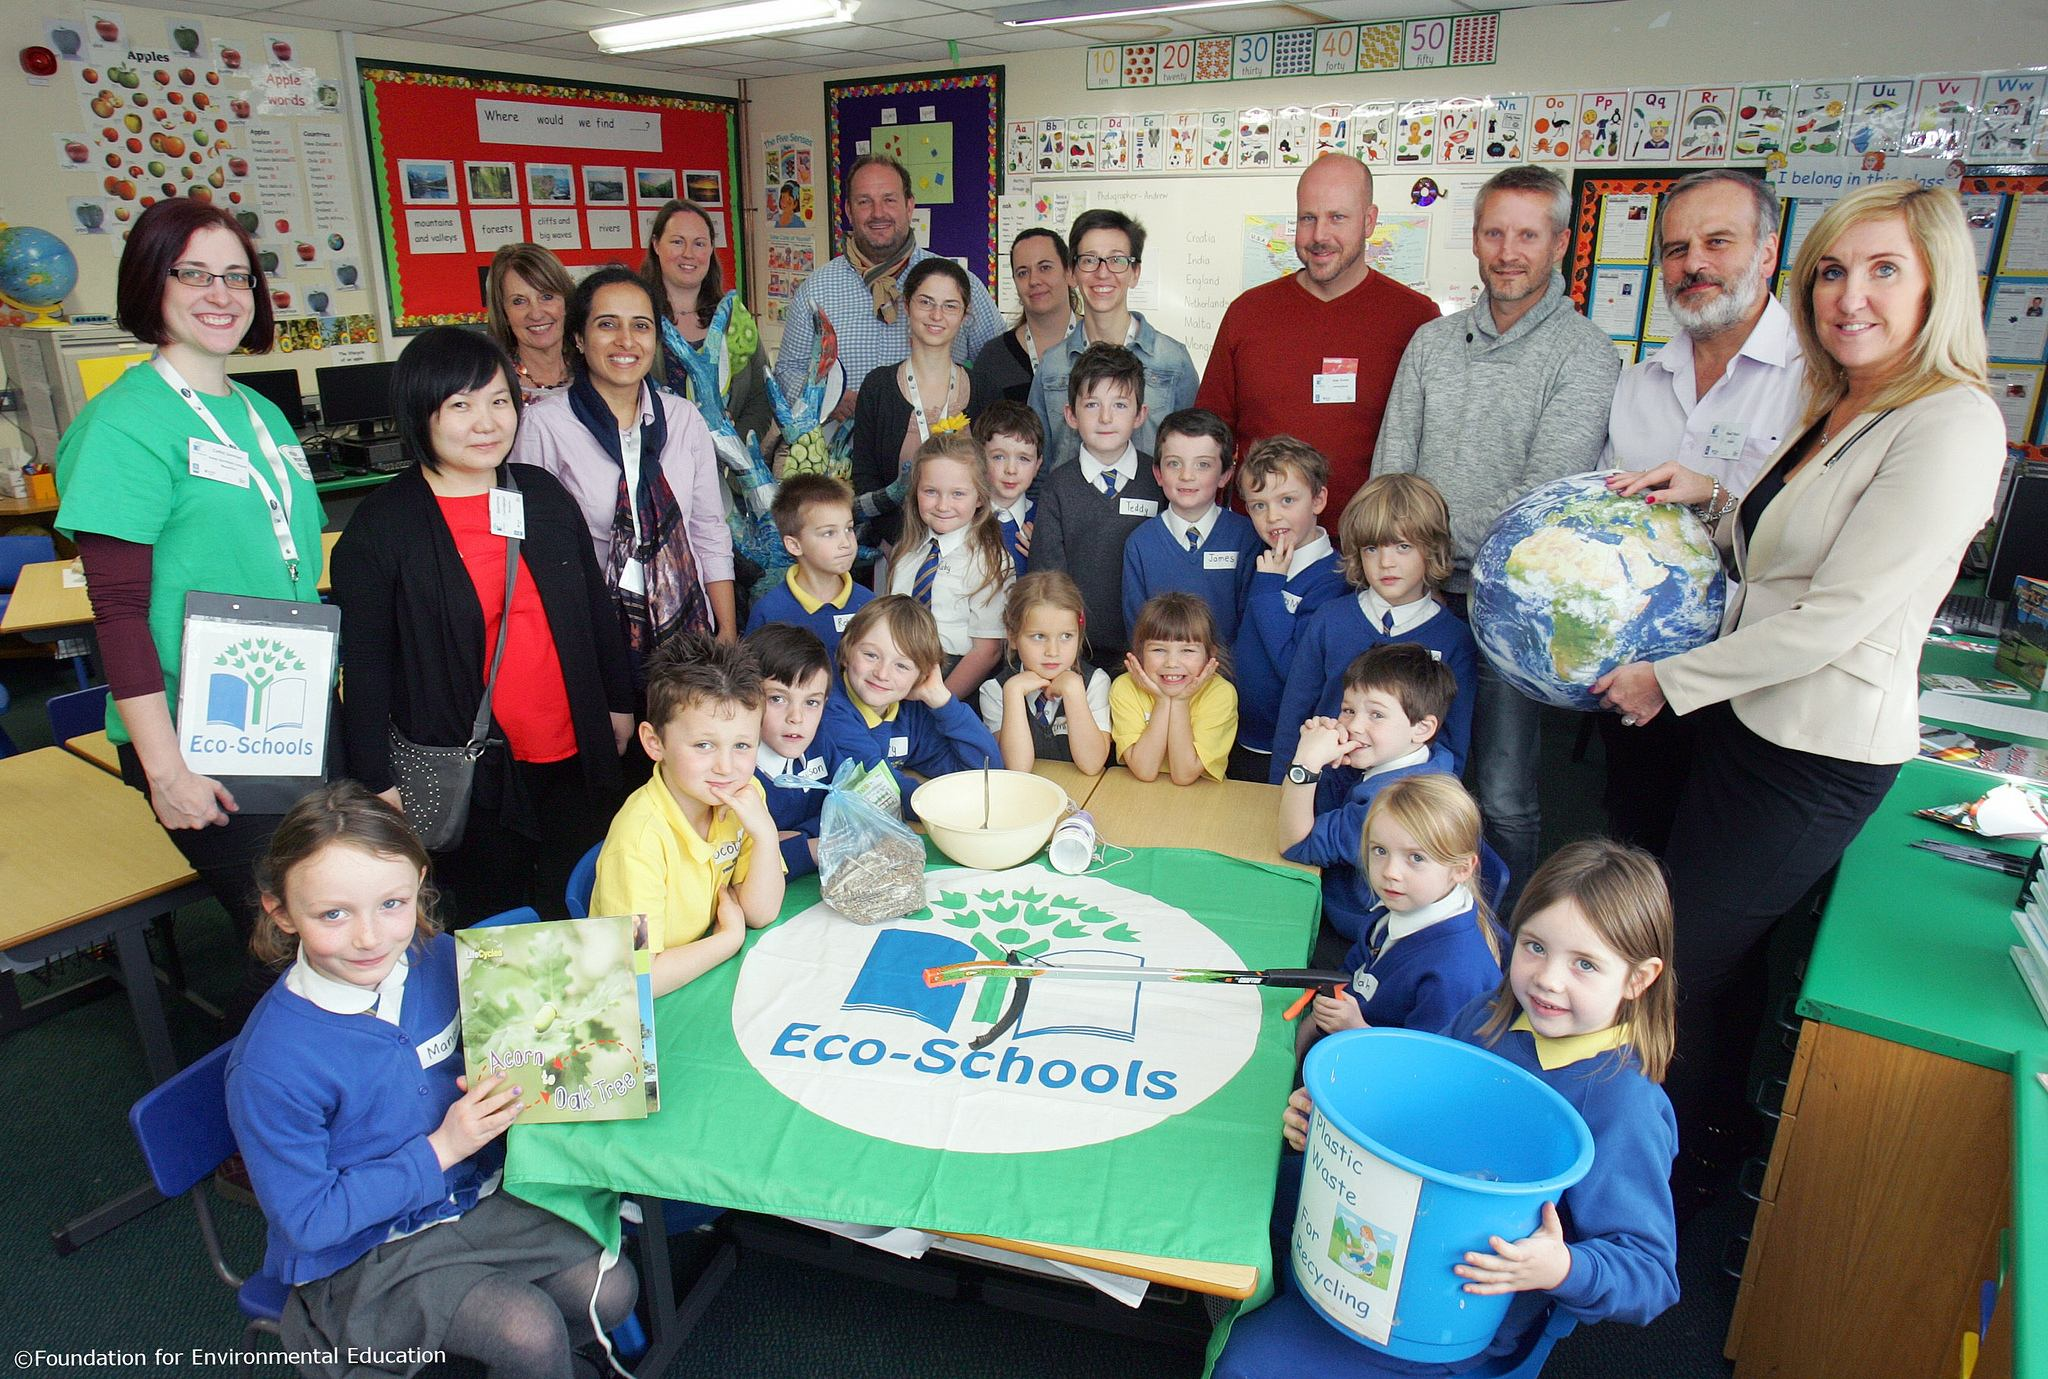 Eco-Schools International, Keep Northern Ireland Beautiful